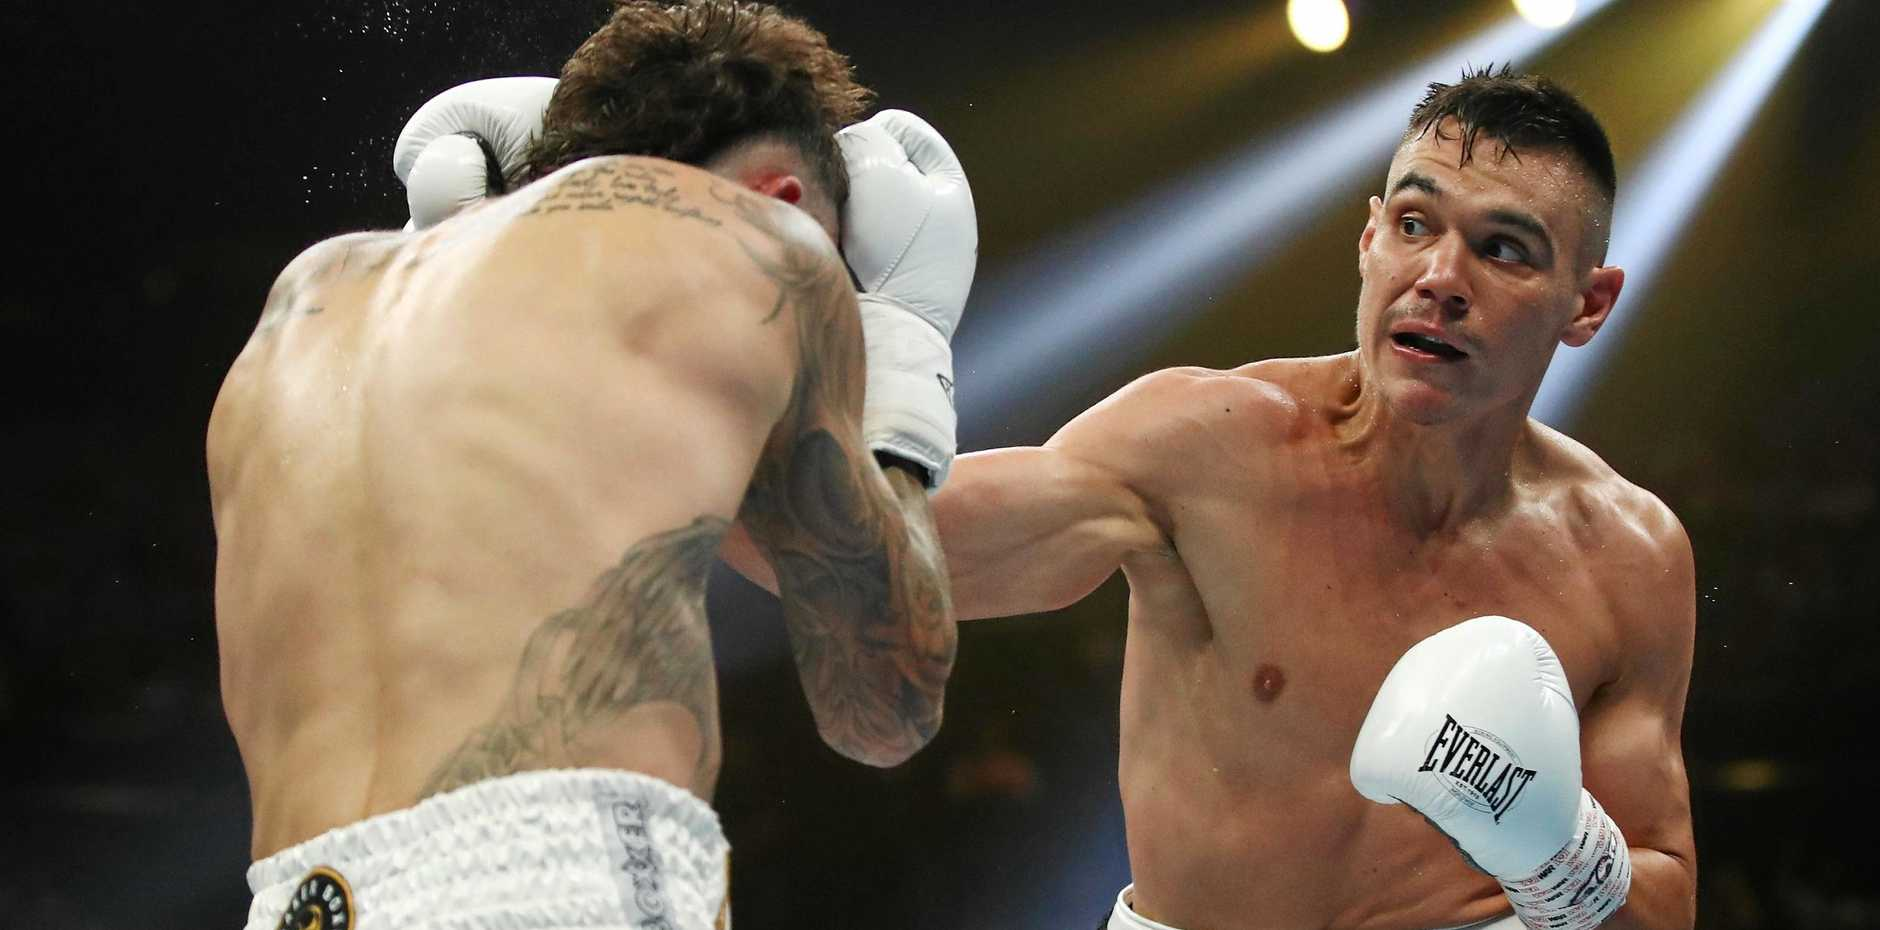 Tim Tszyu lands a punishing blow on Jack Brubaker during their IBF Australasian super welterweight title fight in Sydney on December 6 last year. Picture: Brendon Thorne/AAP